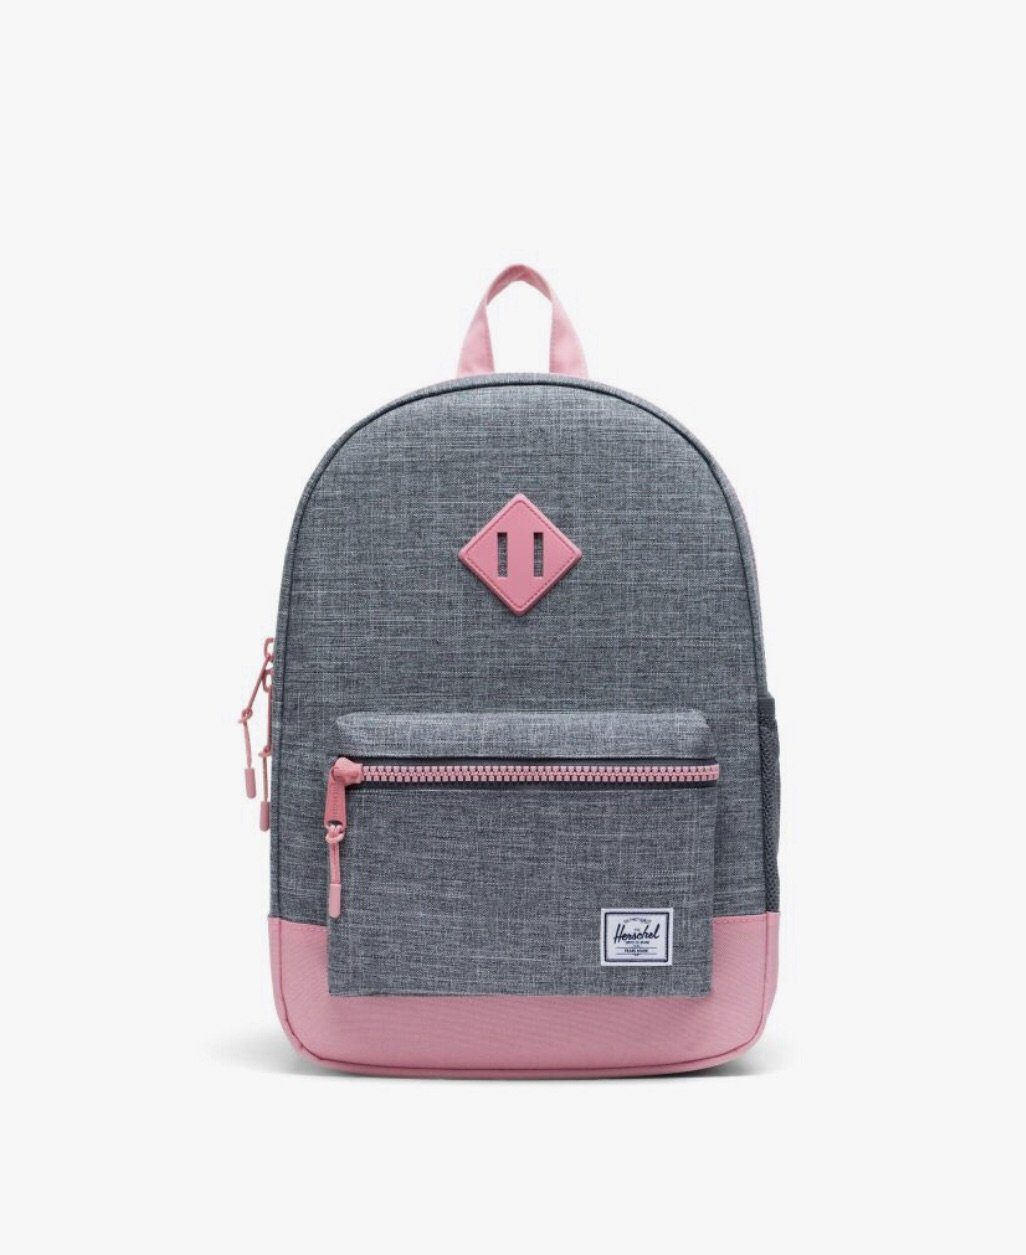 Herschel Youth 16L Backpack - Raven Crosshatch/Flamingo Pink Backpack Herschel